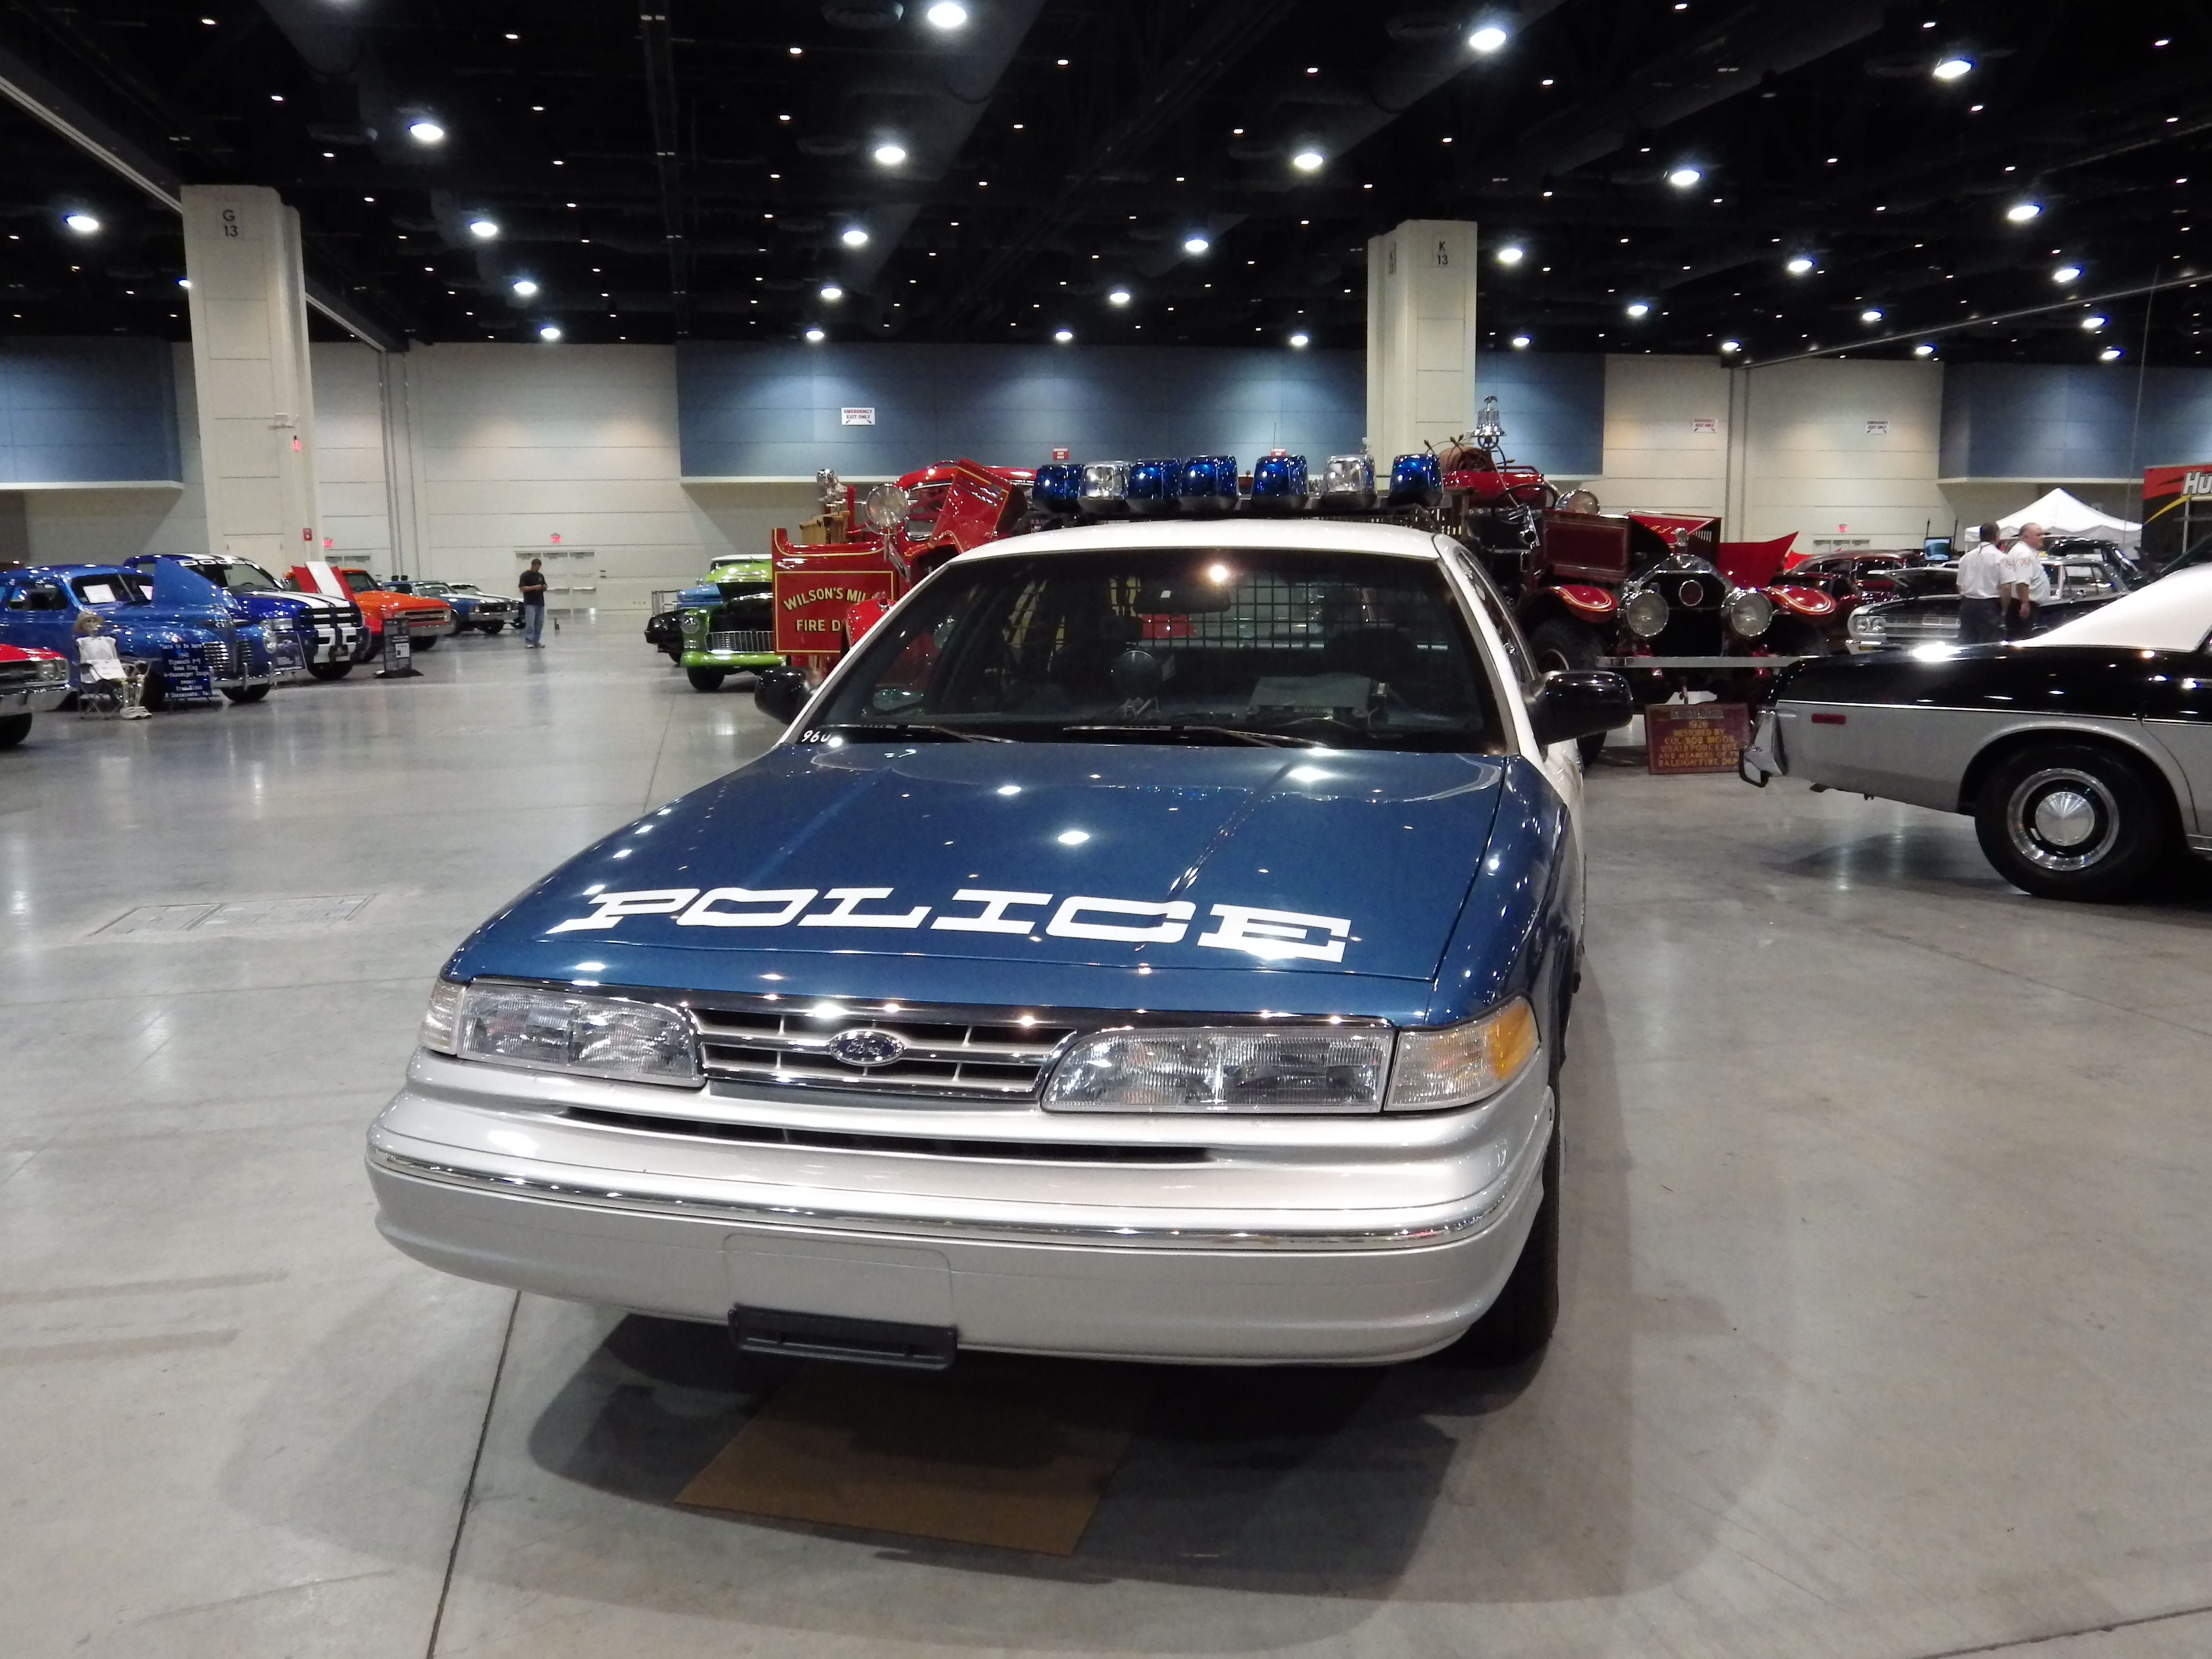 Raleigh Police Ford Crown Victoria Old Police Cars Victoria Police Police Cars